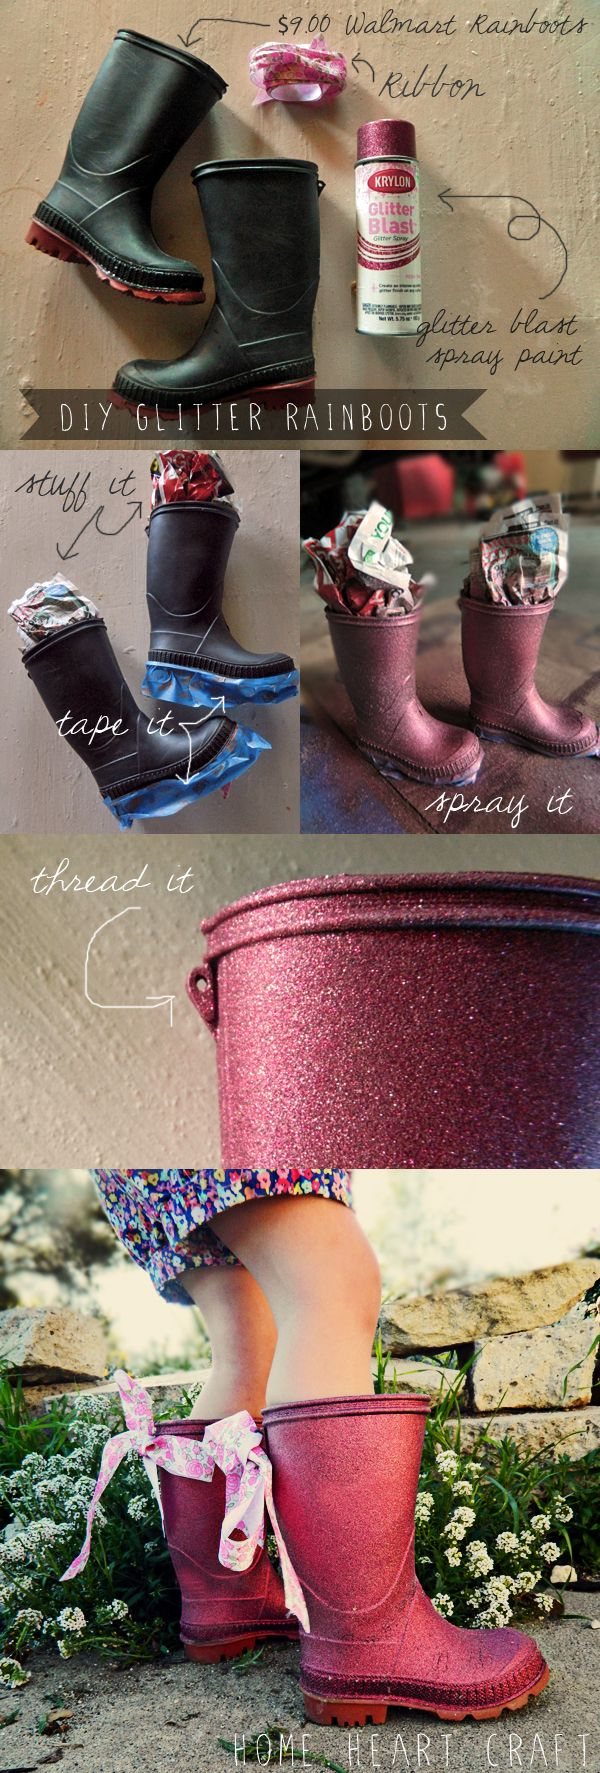 DIY Glitter Rain boots, so cute...can't wait to try this!